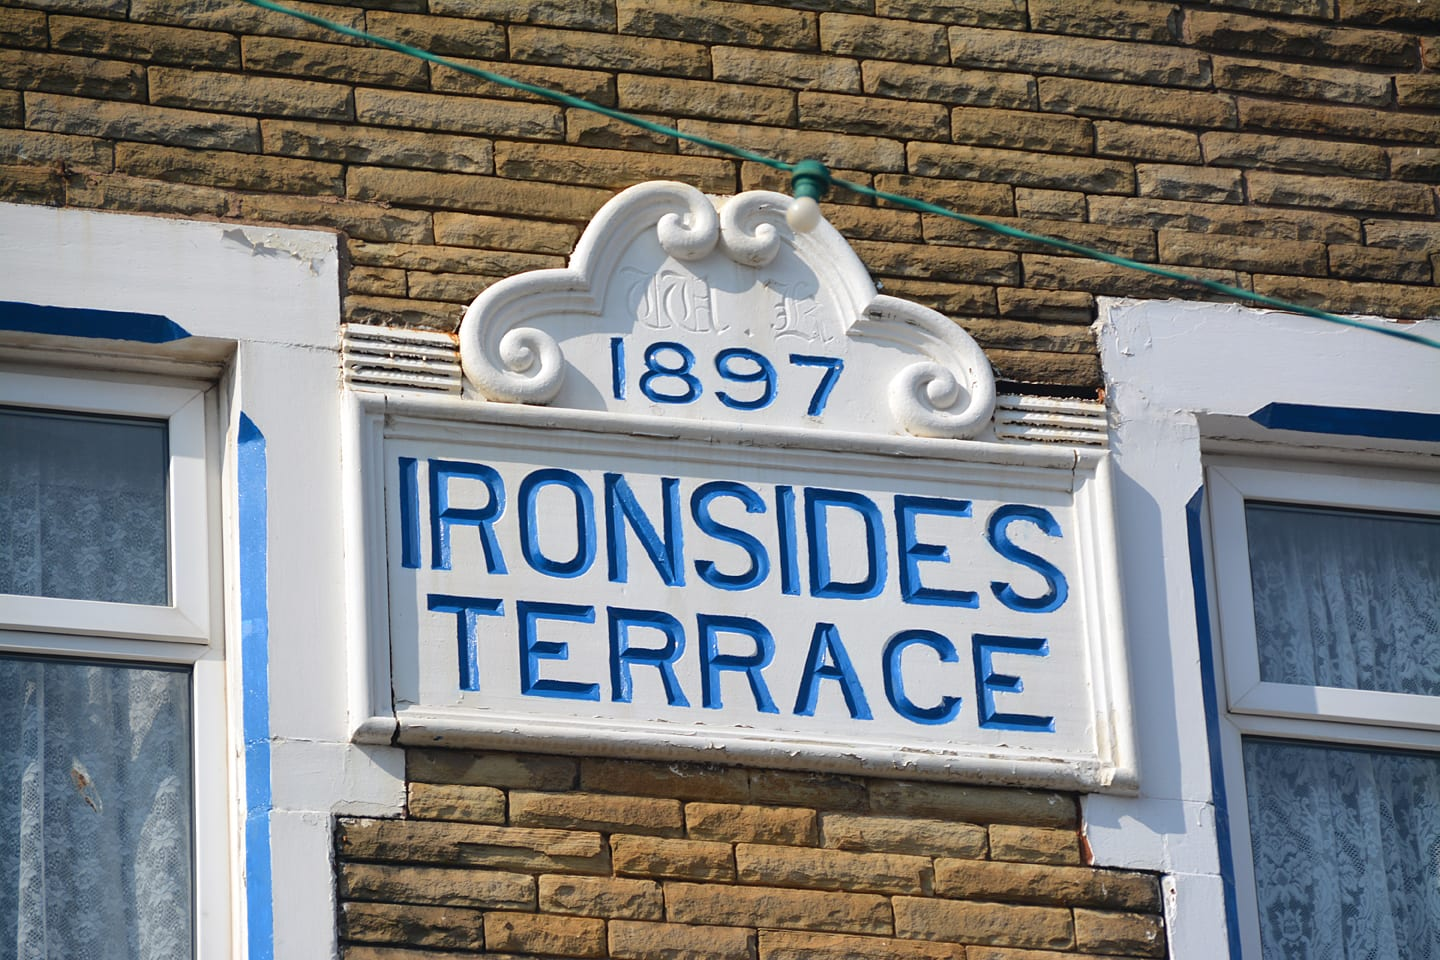 1897 nameplate on Ironsides Terrace, one of many traces of Blackpool's past